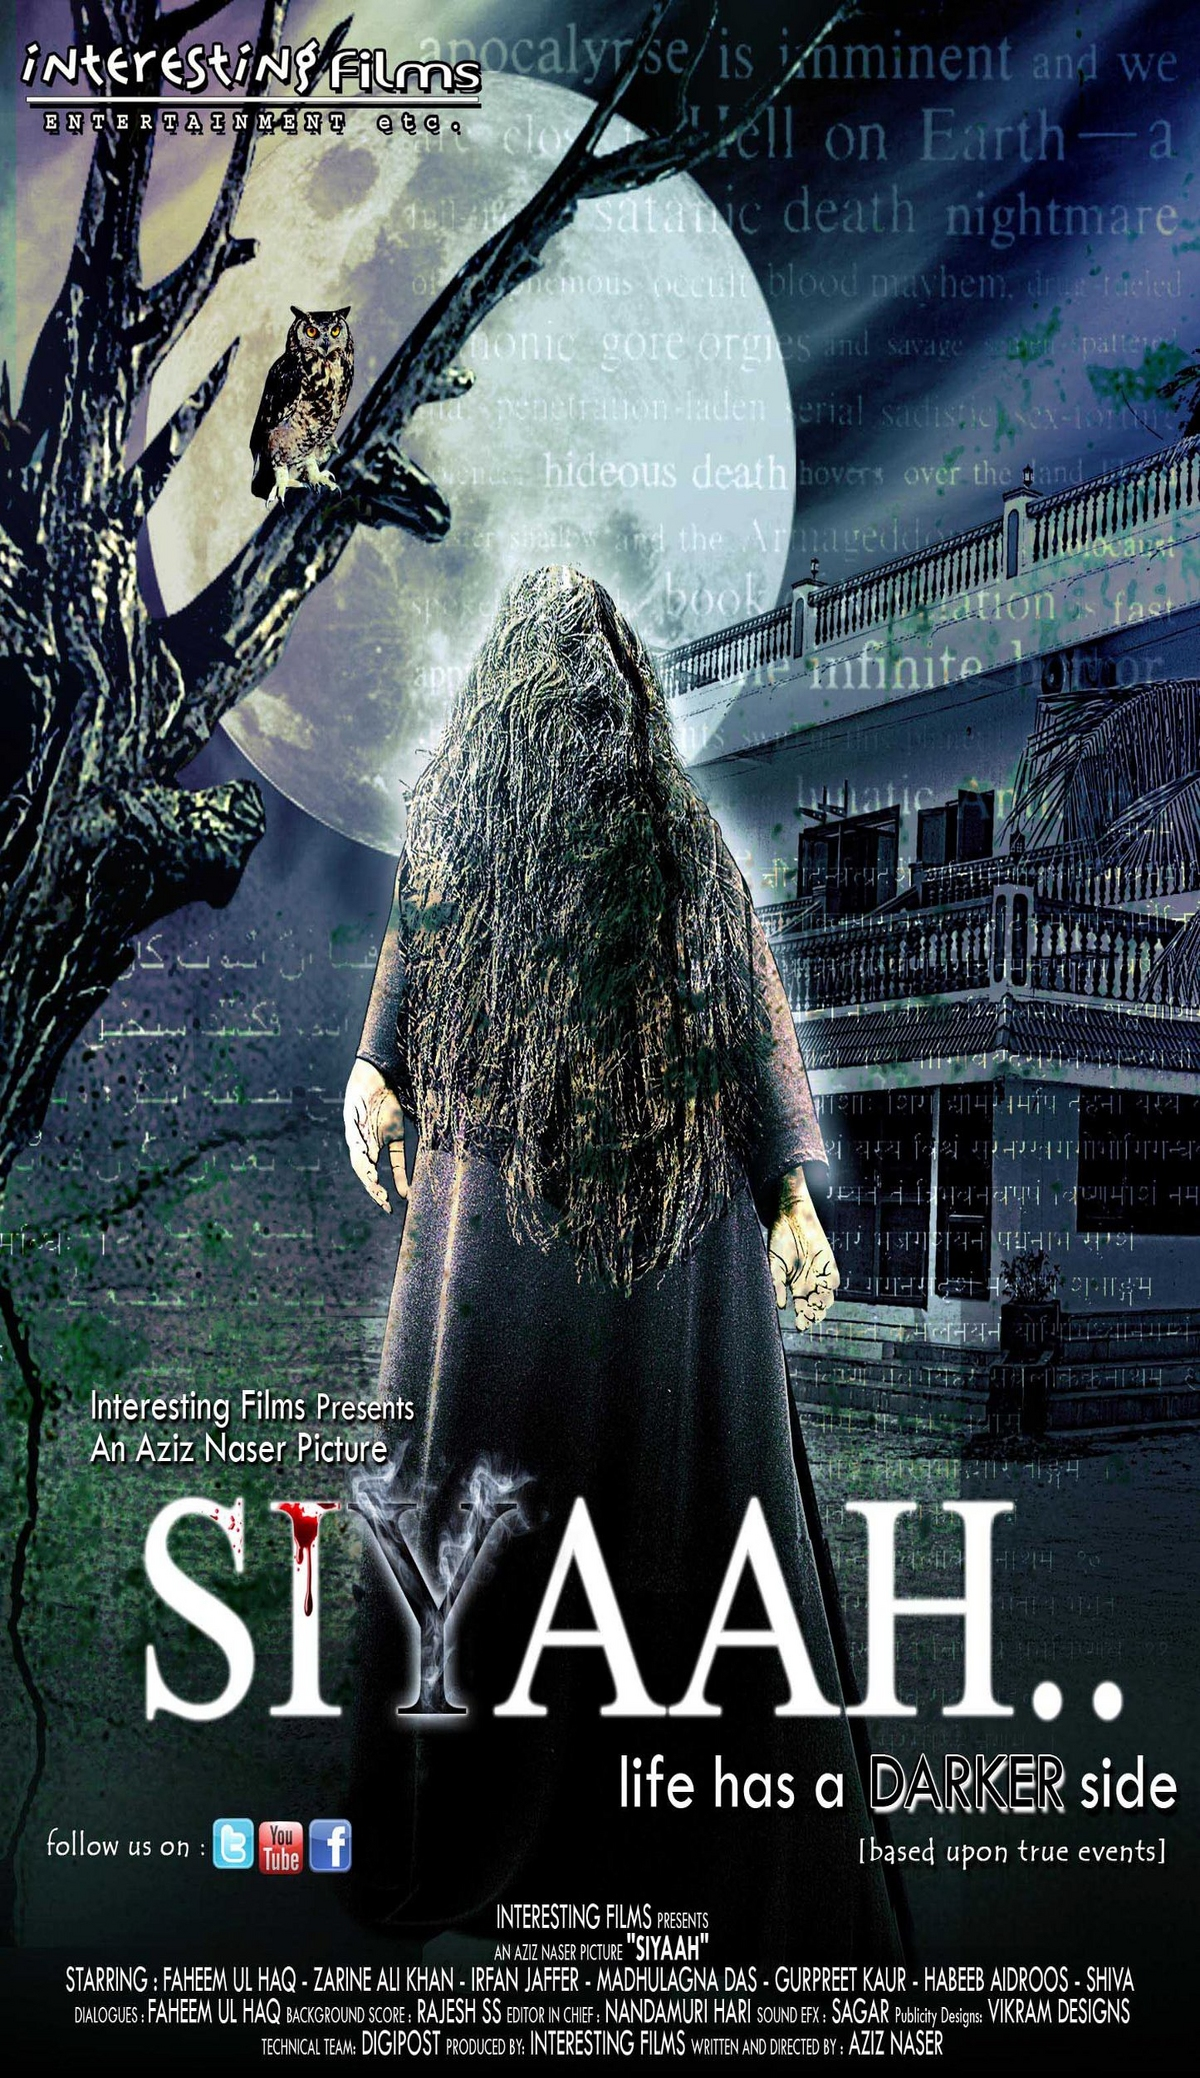 Siyaah.. - Movie Poster #2 (Original)